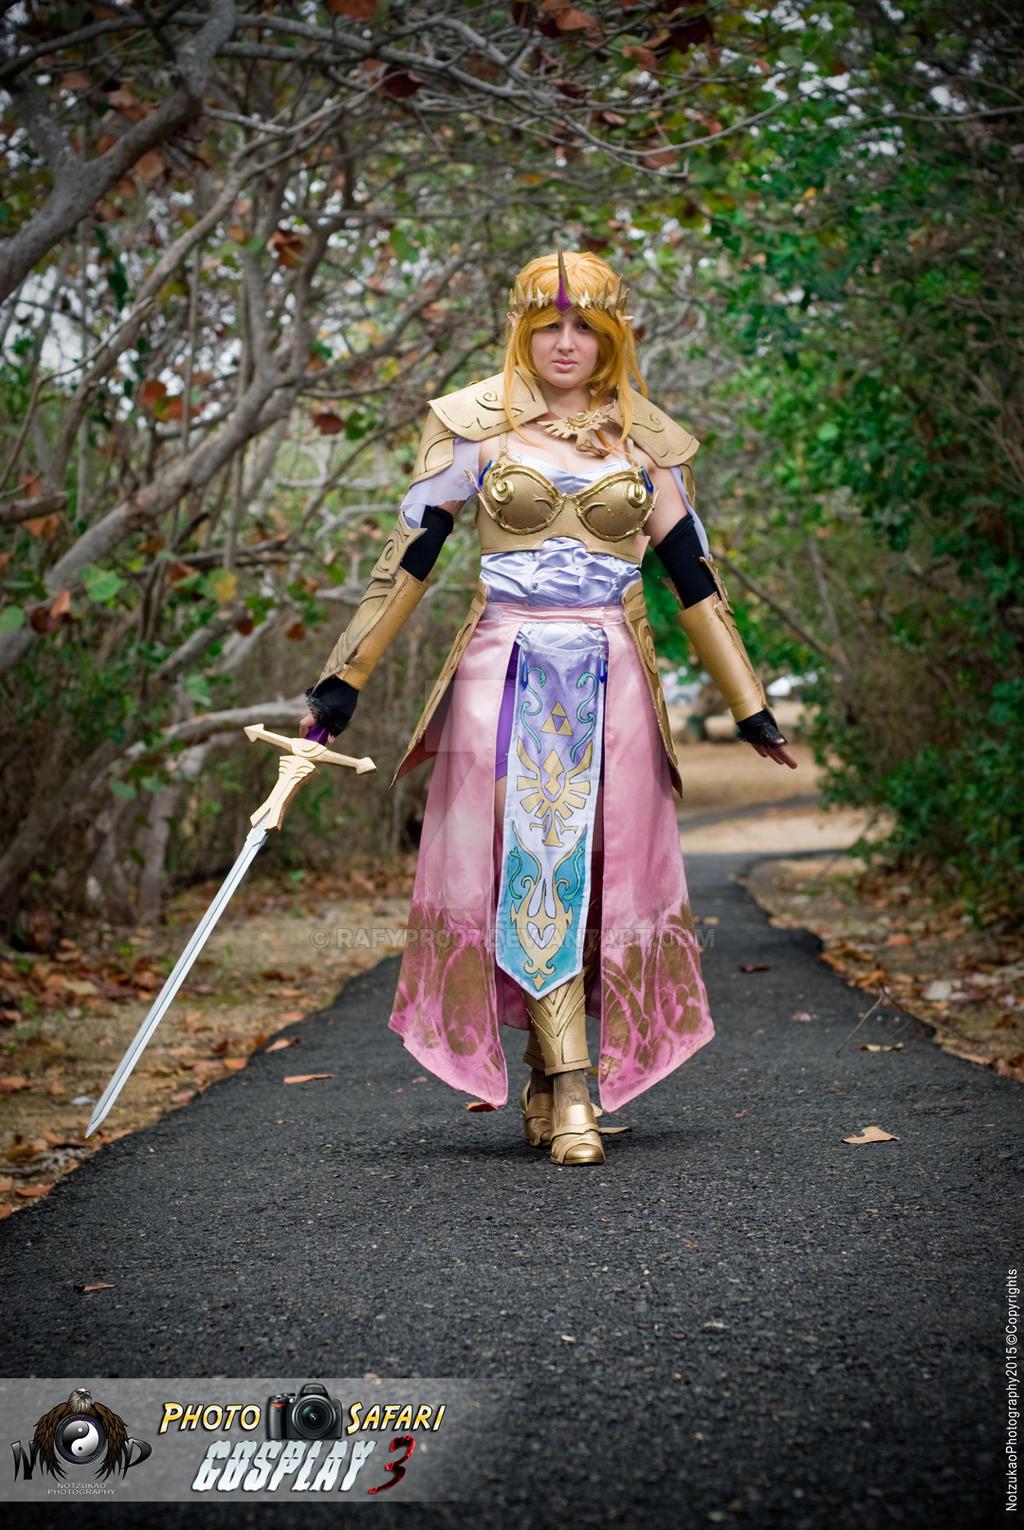 Cosplay Princess Zelda Hyrule Warriors By Rafypr007 On